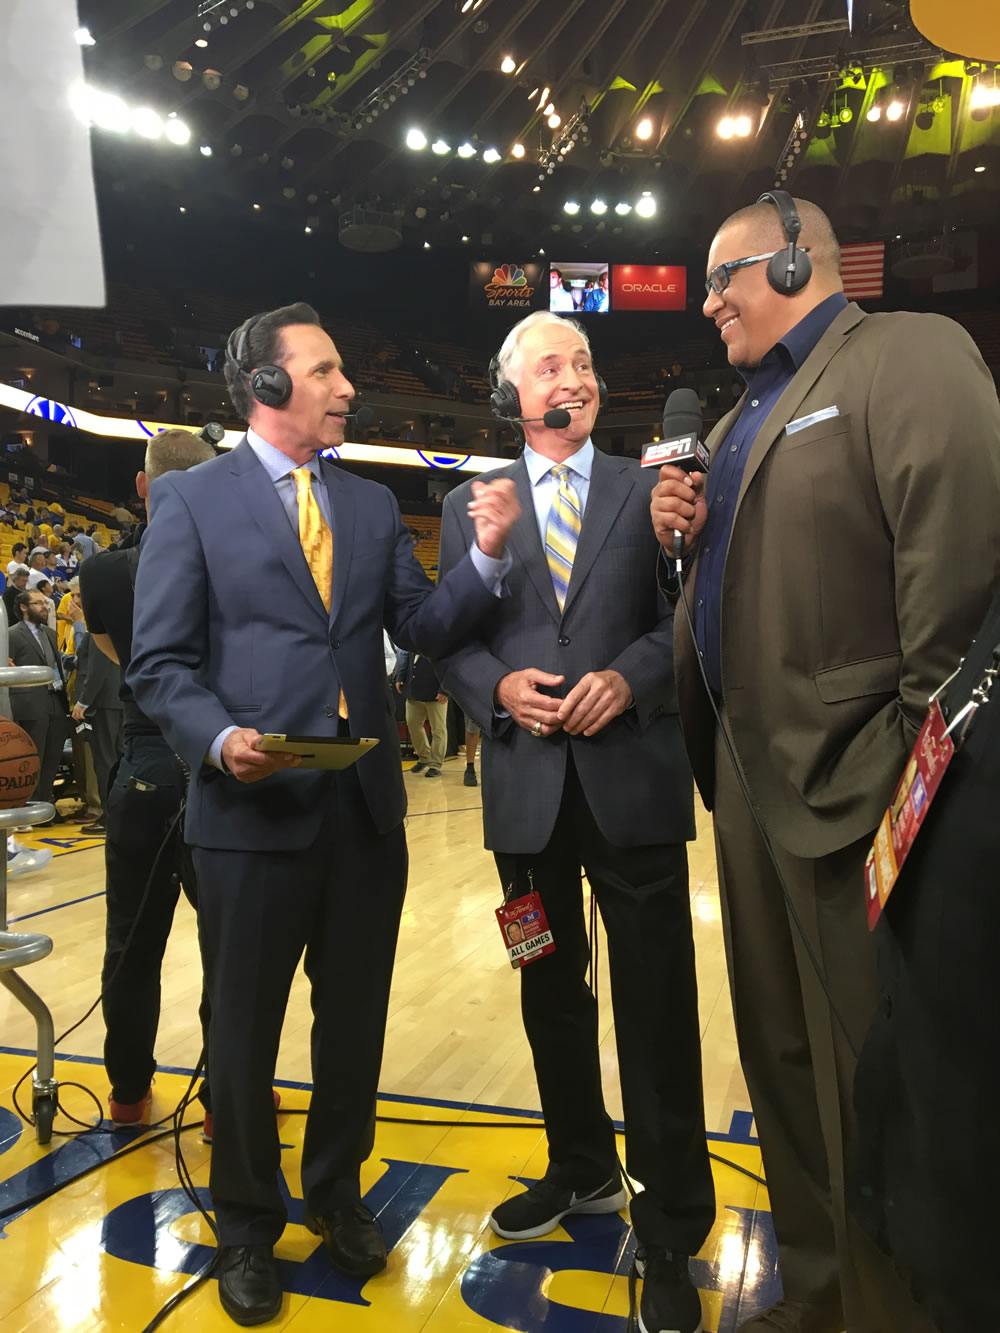 "<div class=""meta image-caption""><div class=""origin-logo origin-image none""><span>none</span></div><span class=""caption-text"">Larry Beil, Mike Shumann and ESPN's Marc Spears talk basketball before game 2 of the NBA Finals in Oakland, Calif. on Sunday, June 4, 2017. (KGO-TV)</span></div>"